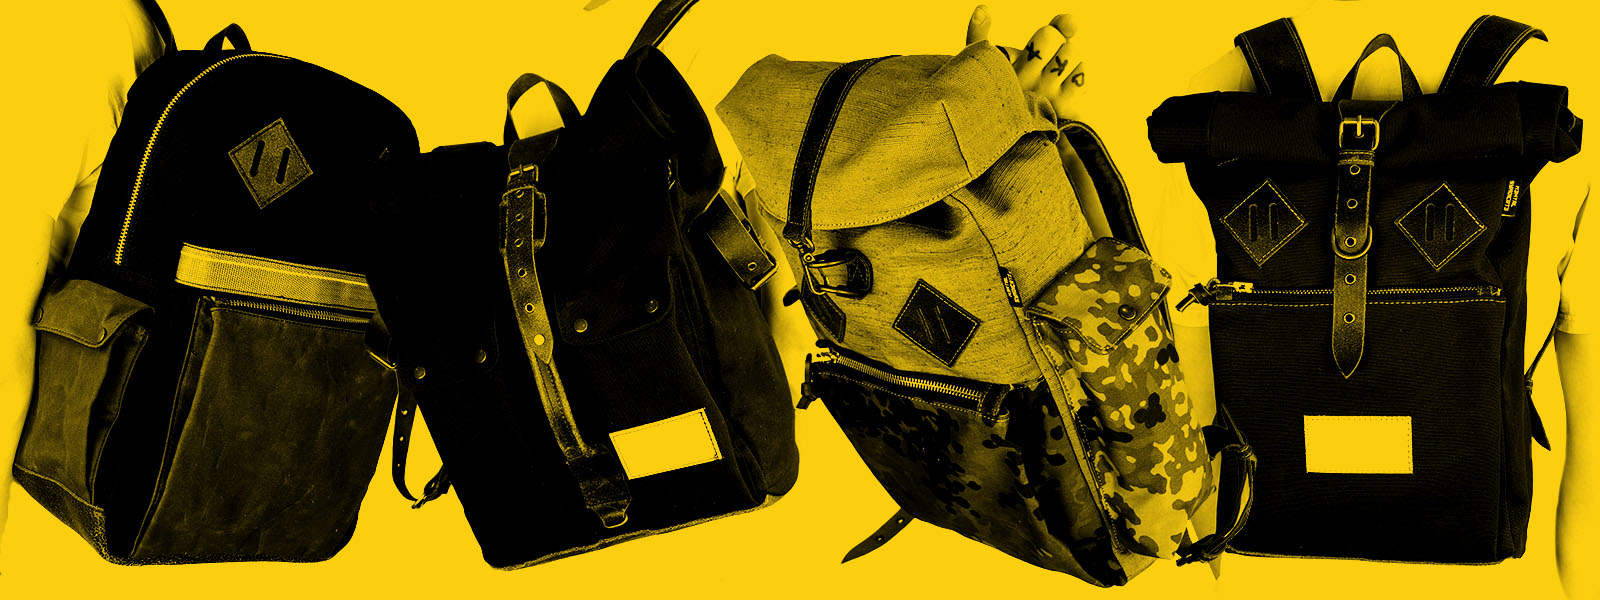 Handmade backpacks made of raw denim, canvas and linen in combination with natural untreated leather